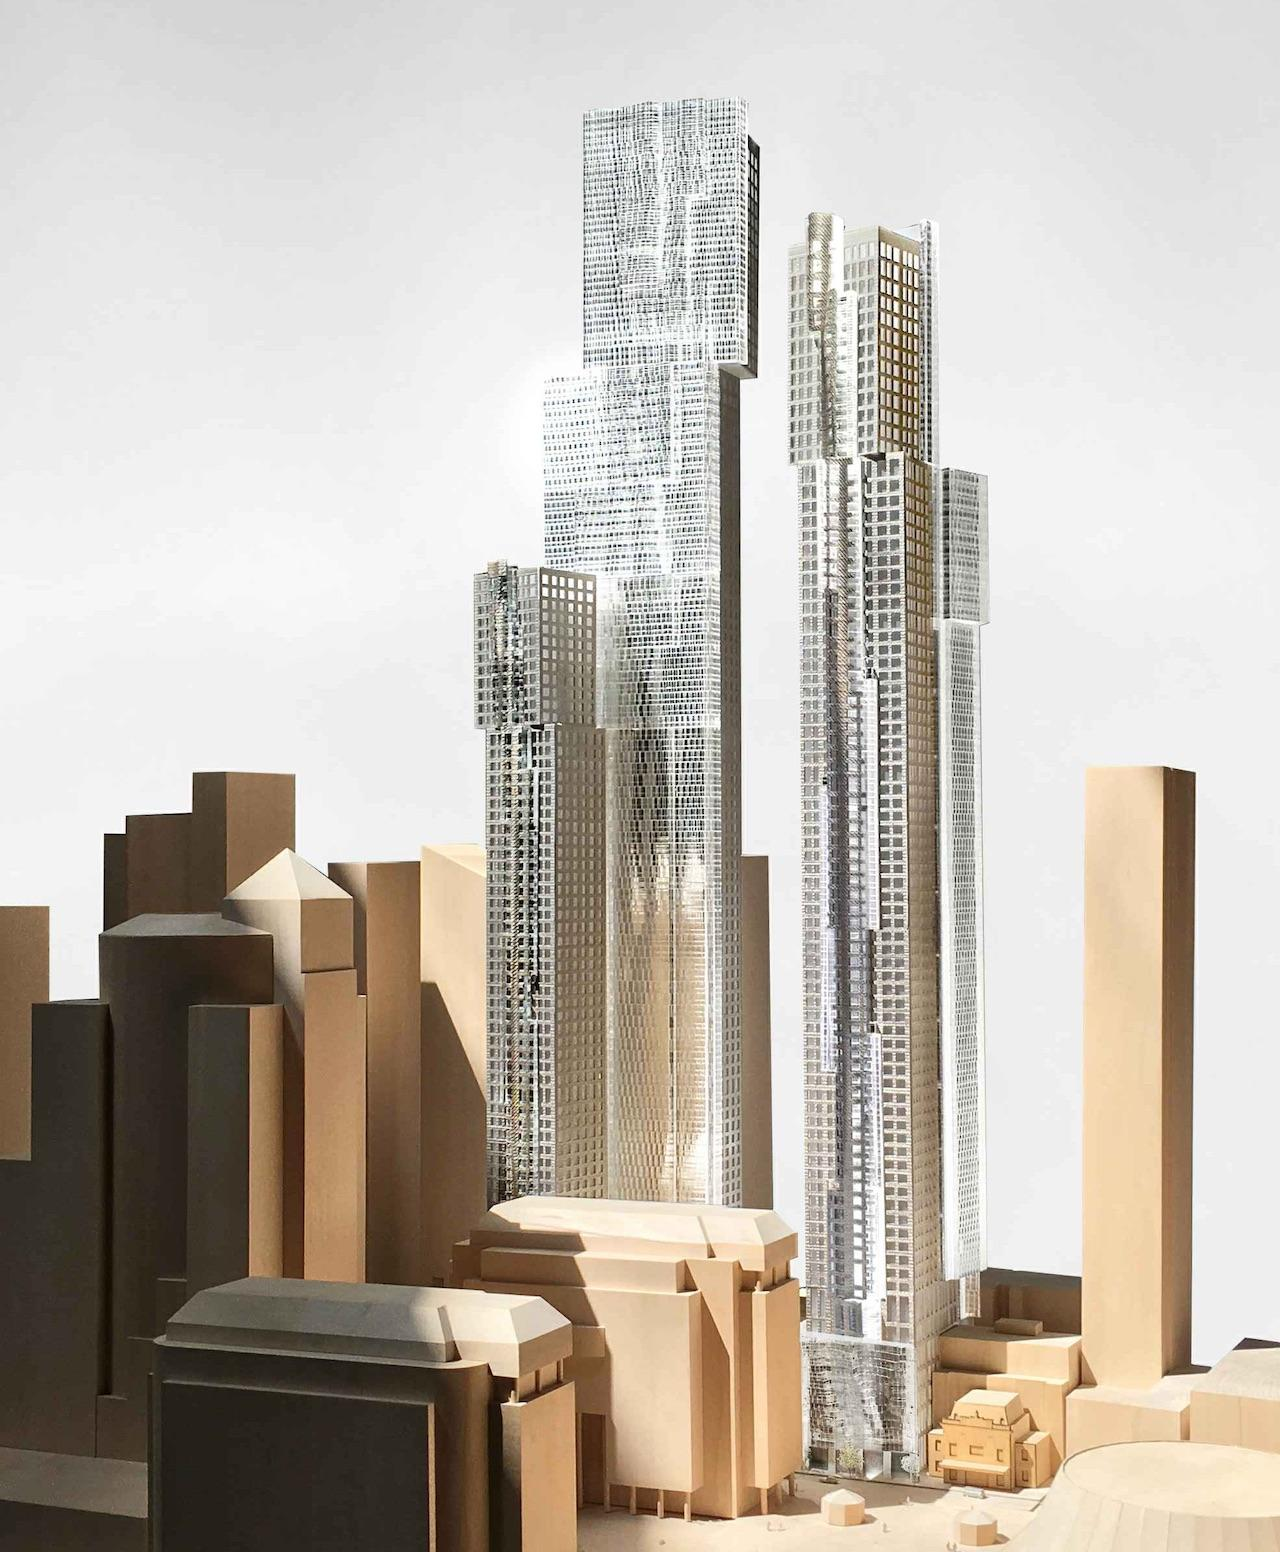 Looking northwest to the December, 2018 model for Mirvish+Gehry Toronto, designed by Gehry Partners for Projectcore